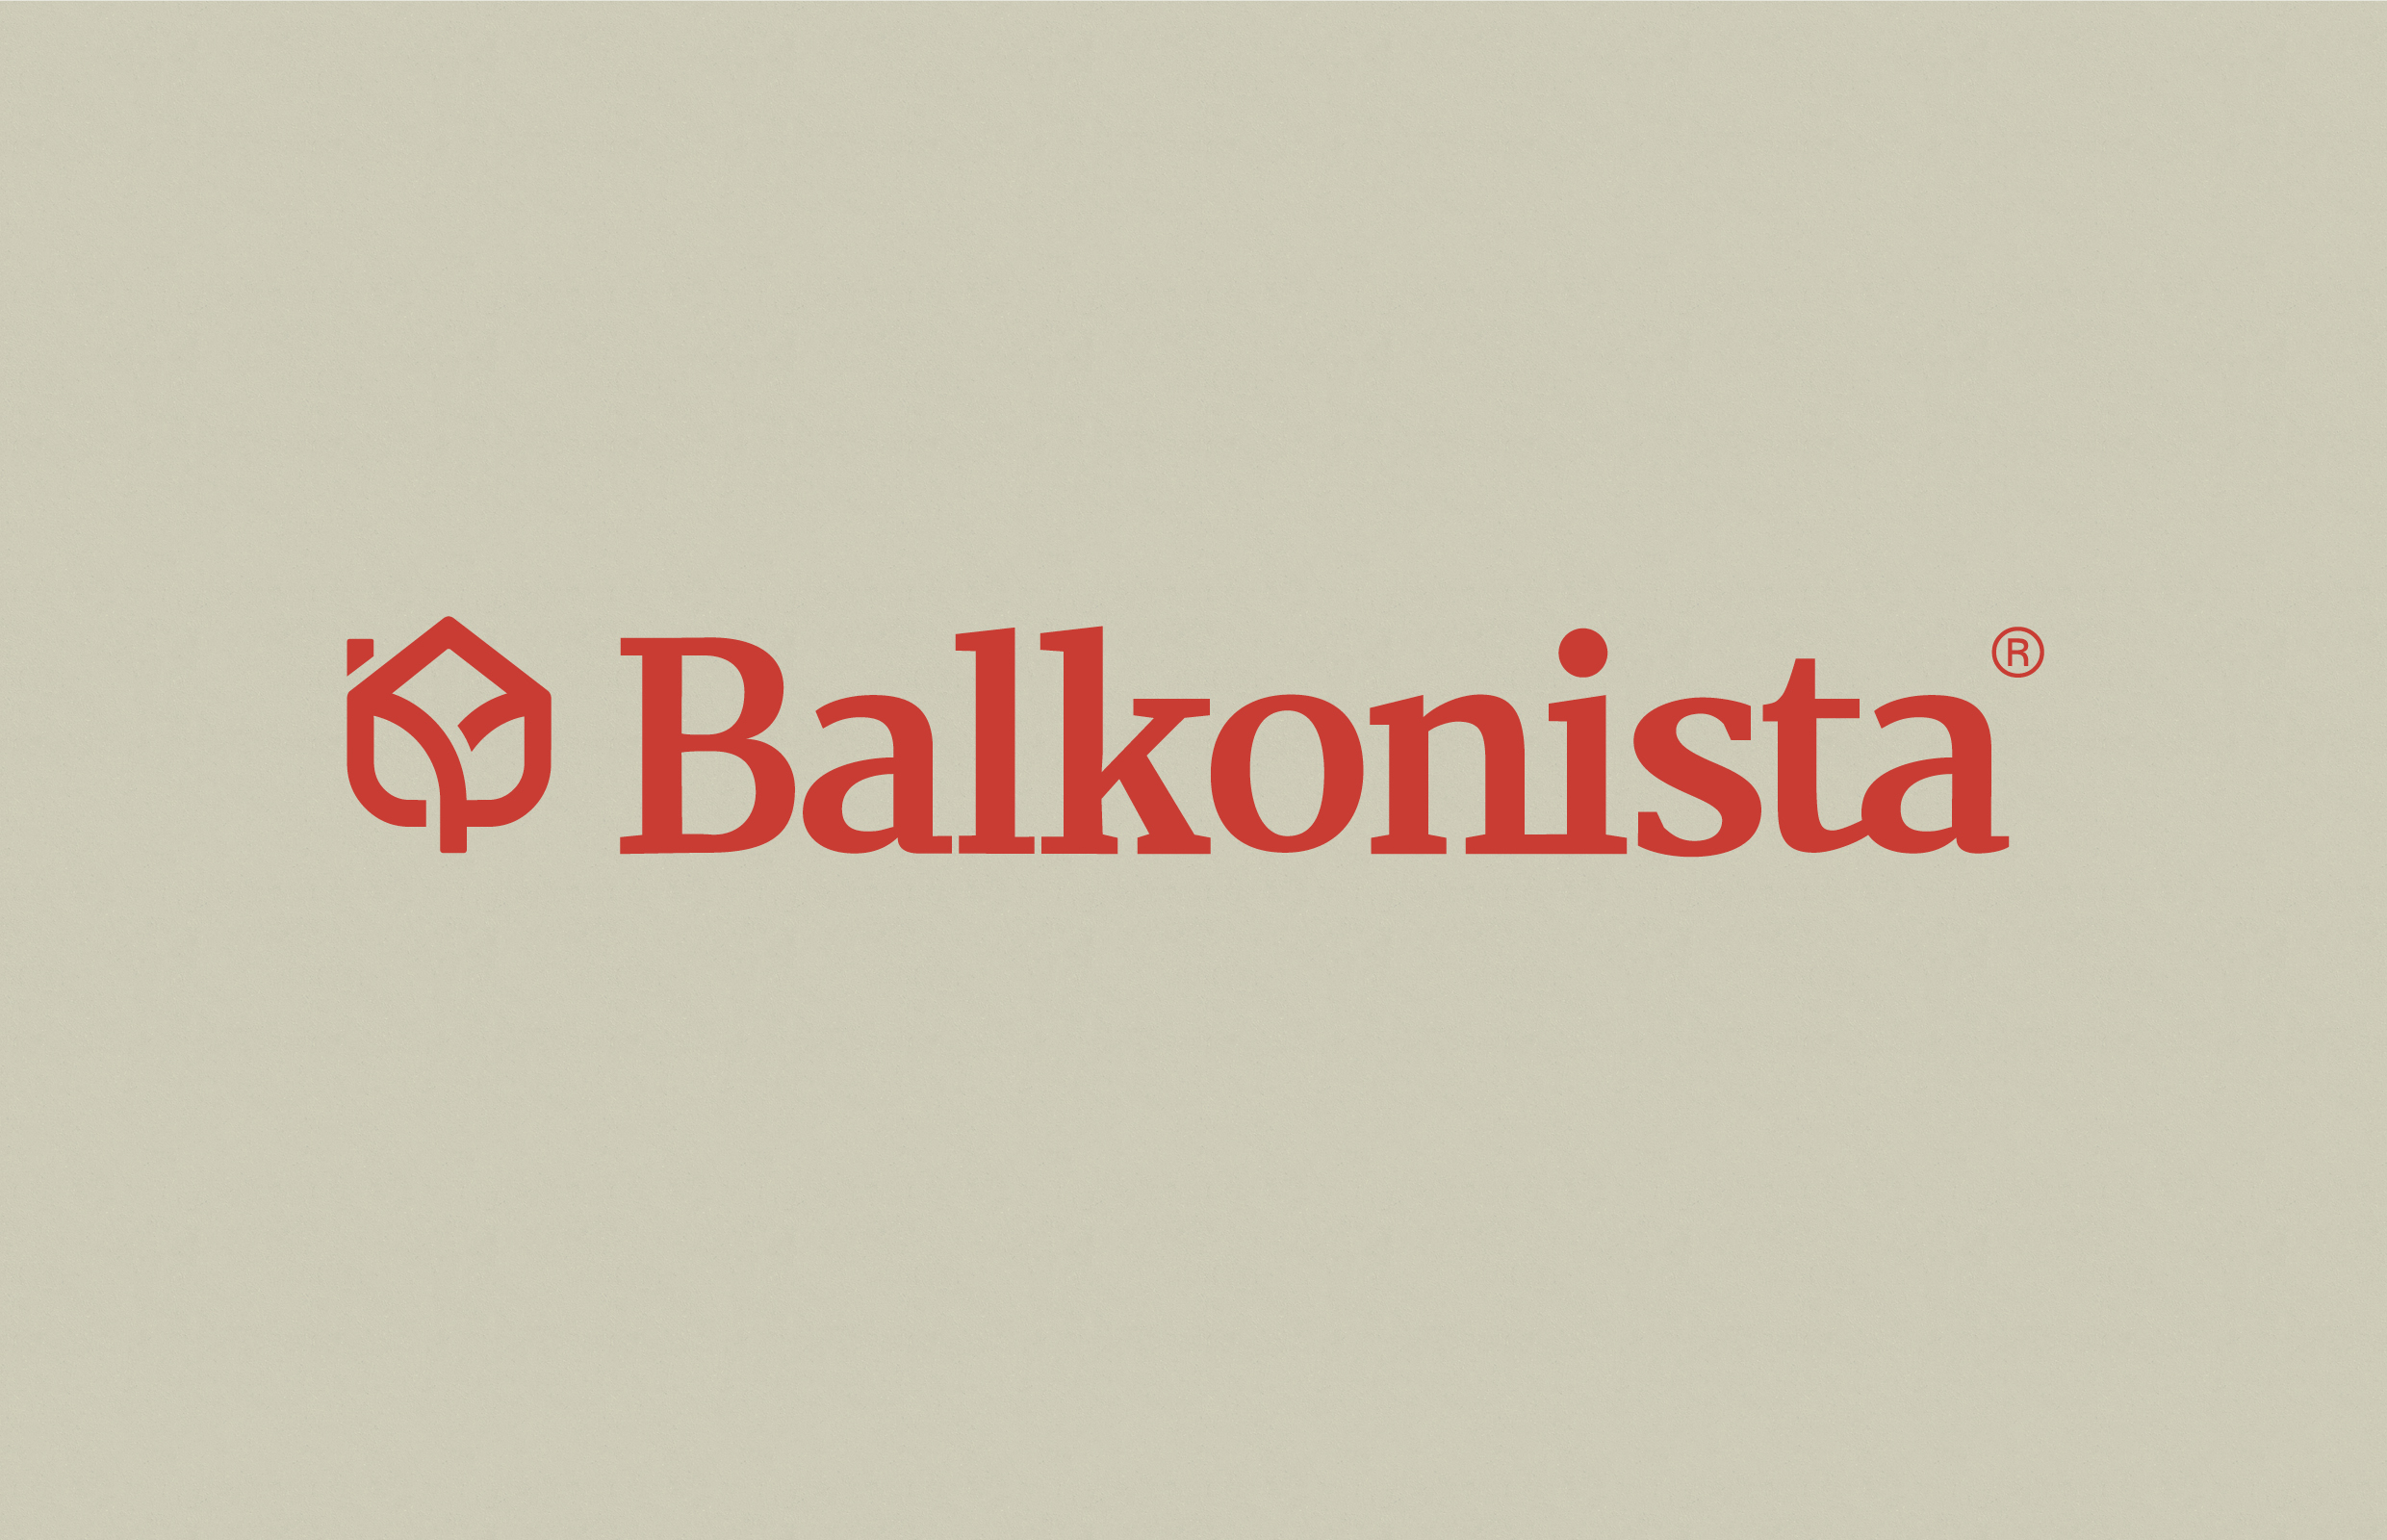 blank_communication_balkonista_2480x1600_05.jpg